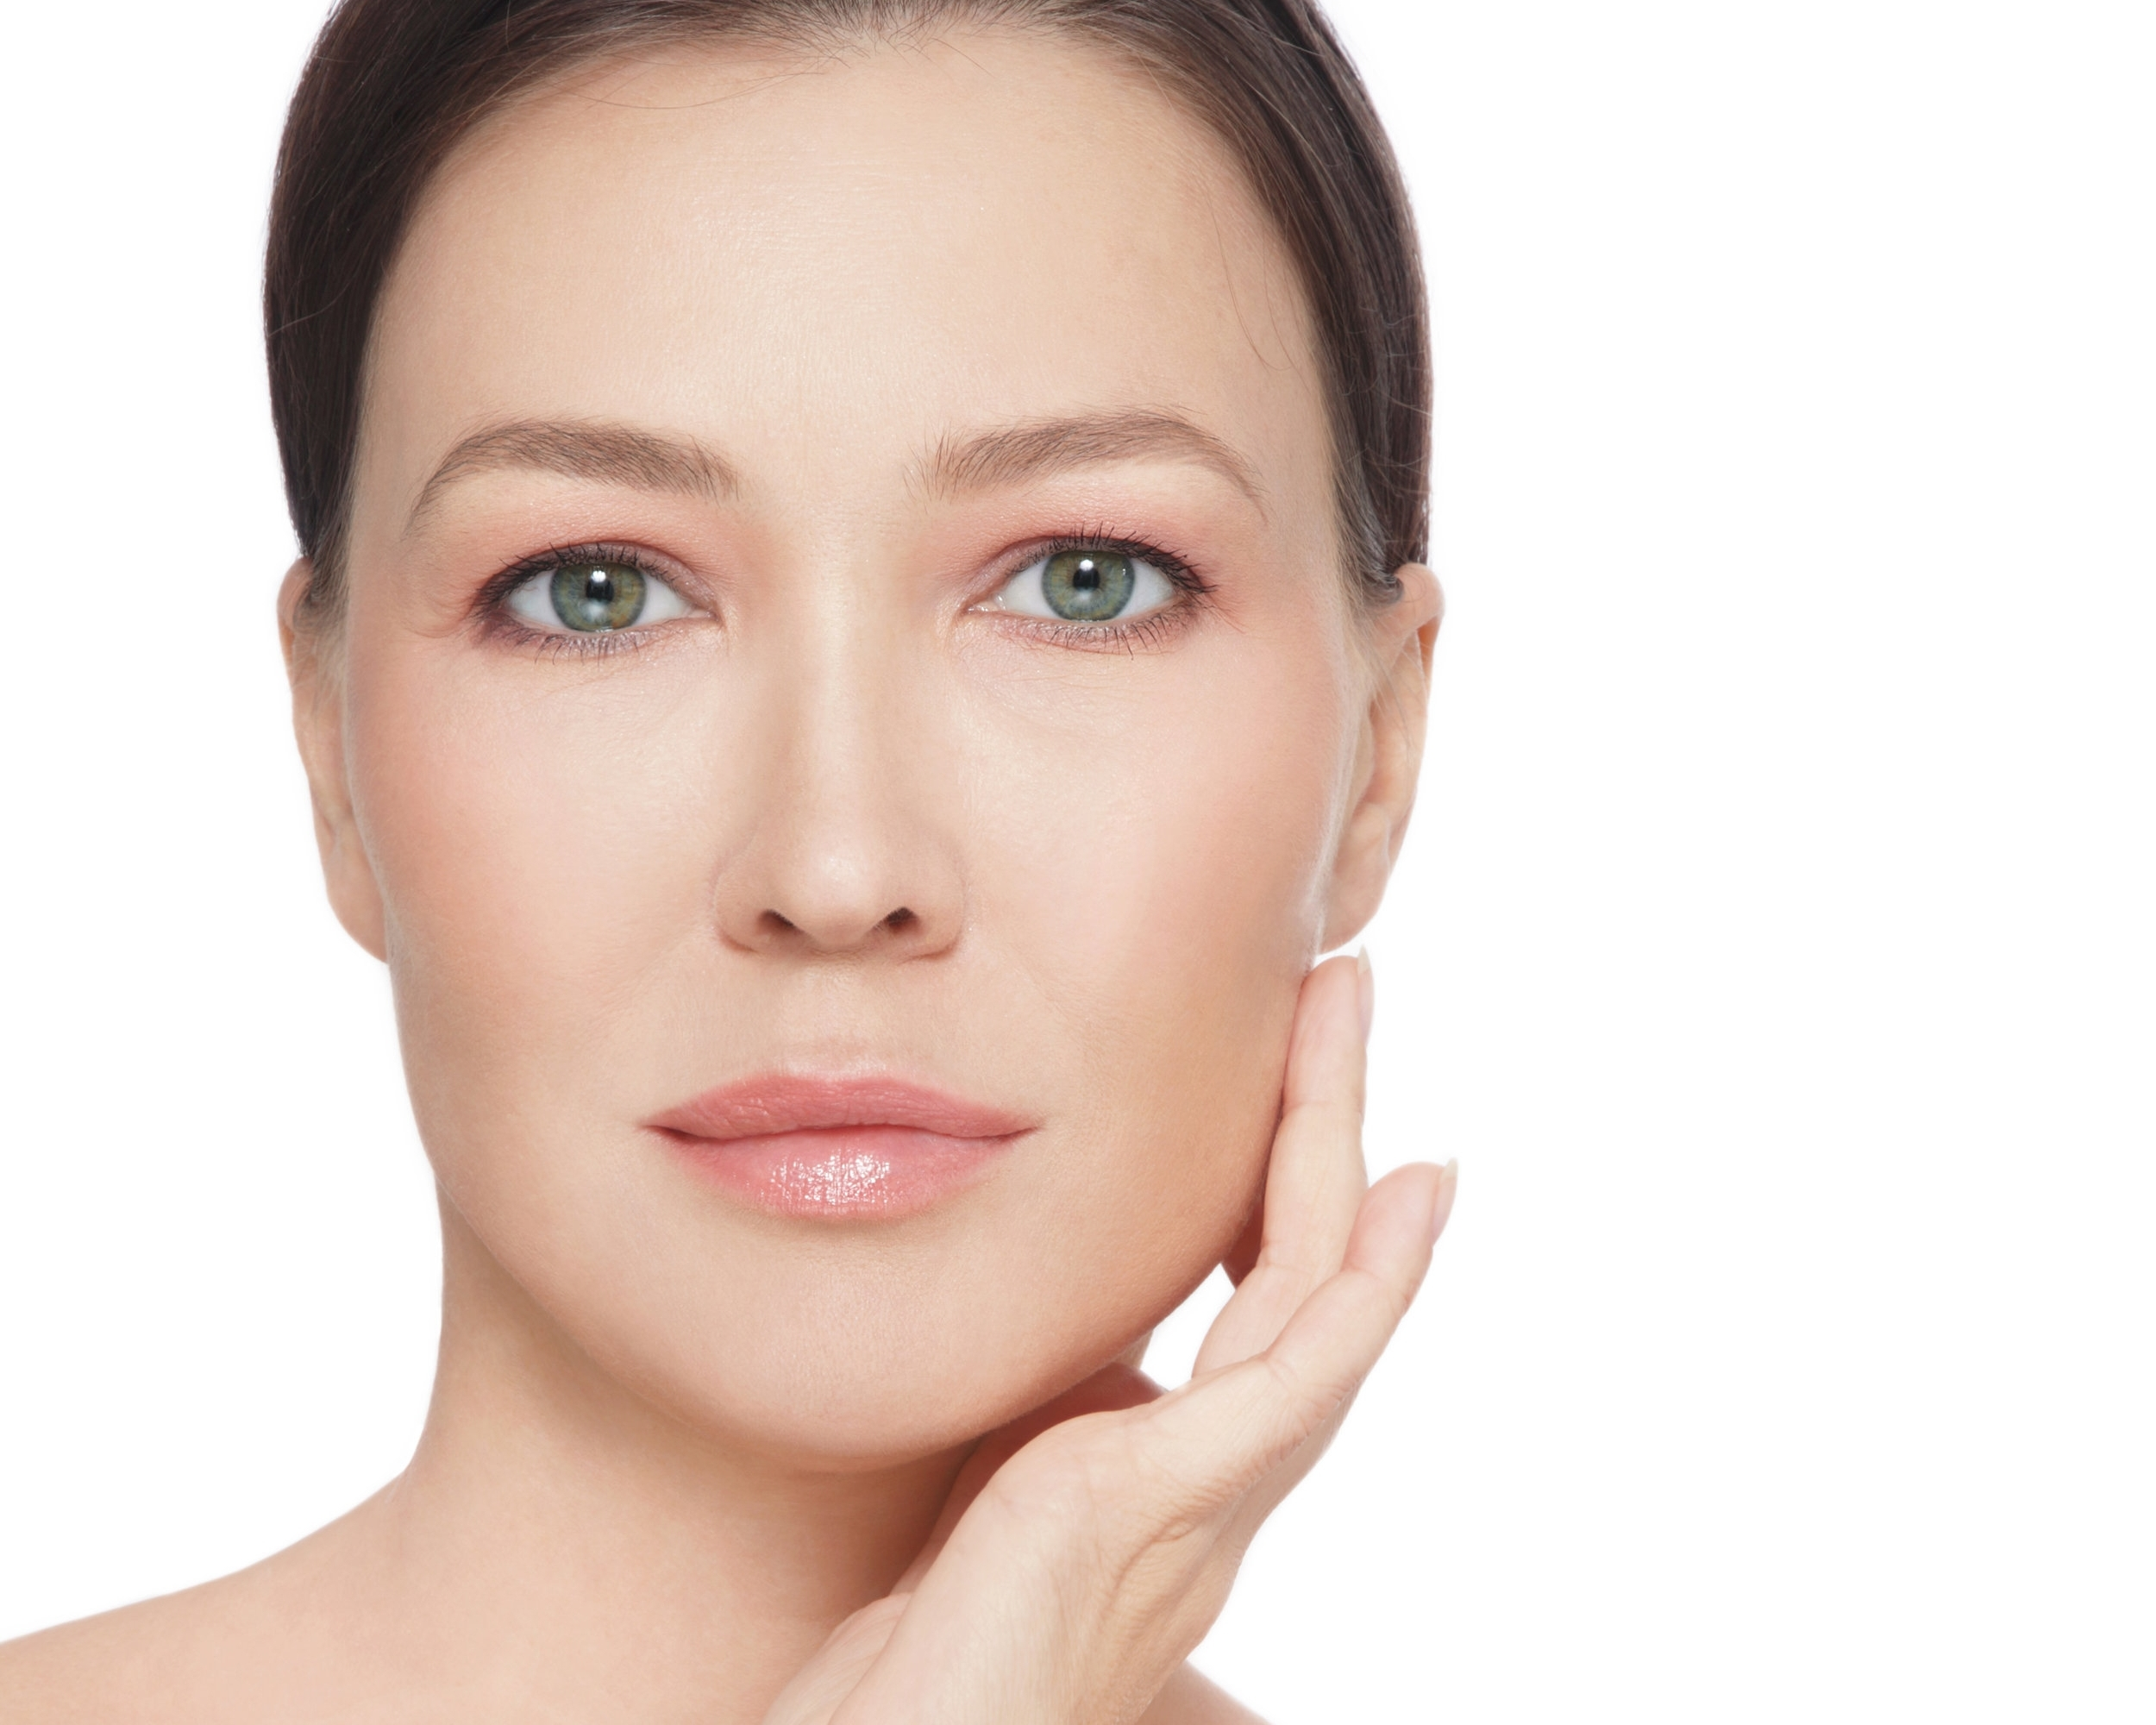 BOTOX® - BOTOX® Cosmetic is the only approved treatment to temporarily improve the appearance of both moderate to severe frown lines between the brows and crow's feet lines in adults. BOTOX® Cosmetic works beneath the skin's surface and targets the underlying muscle activity that causes frown lines and crow's feet.